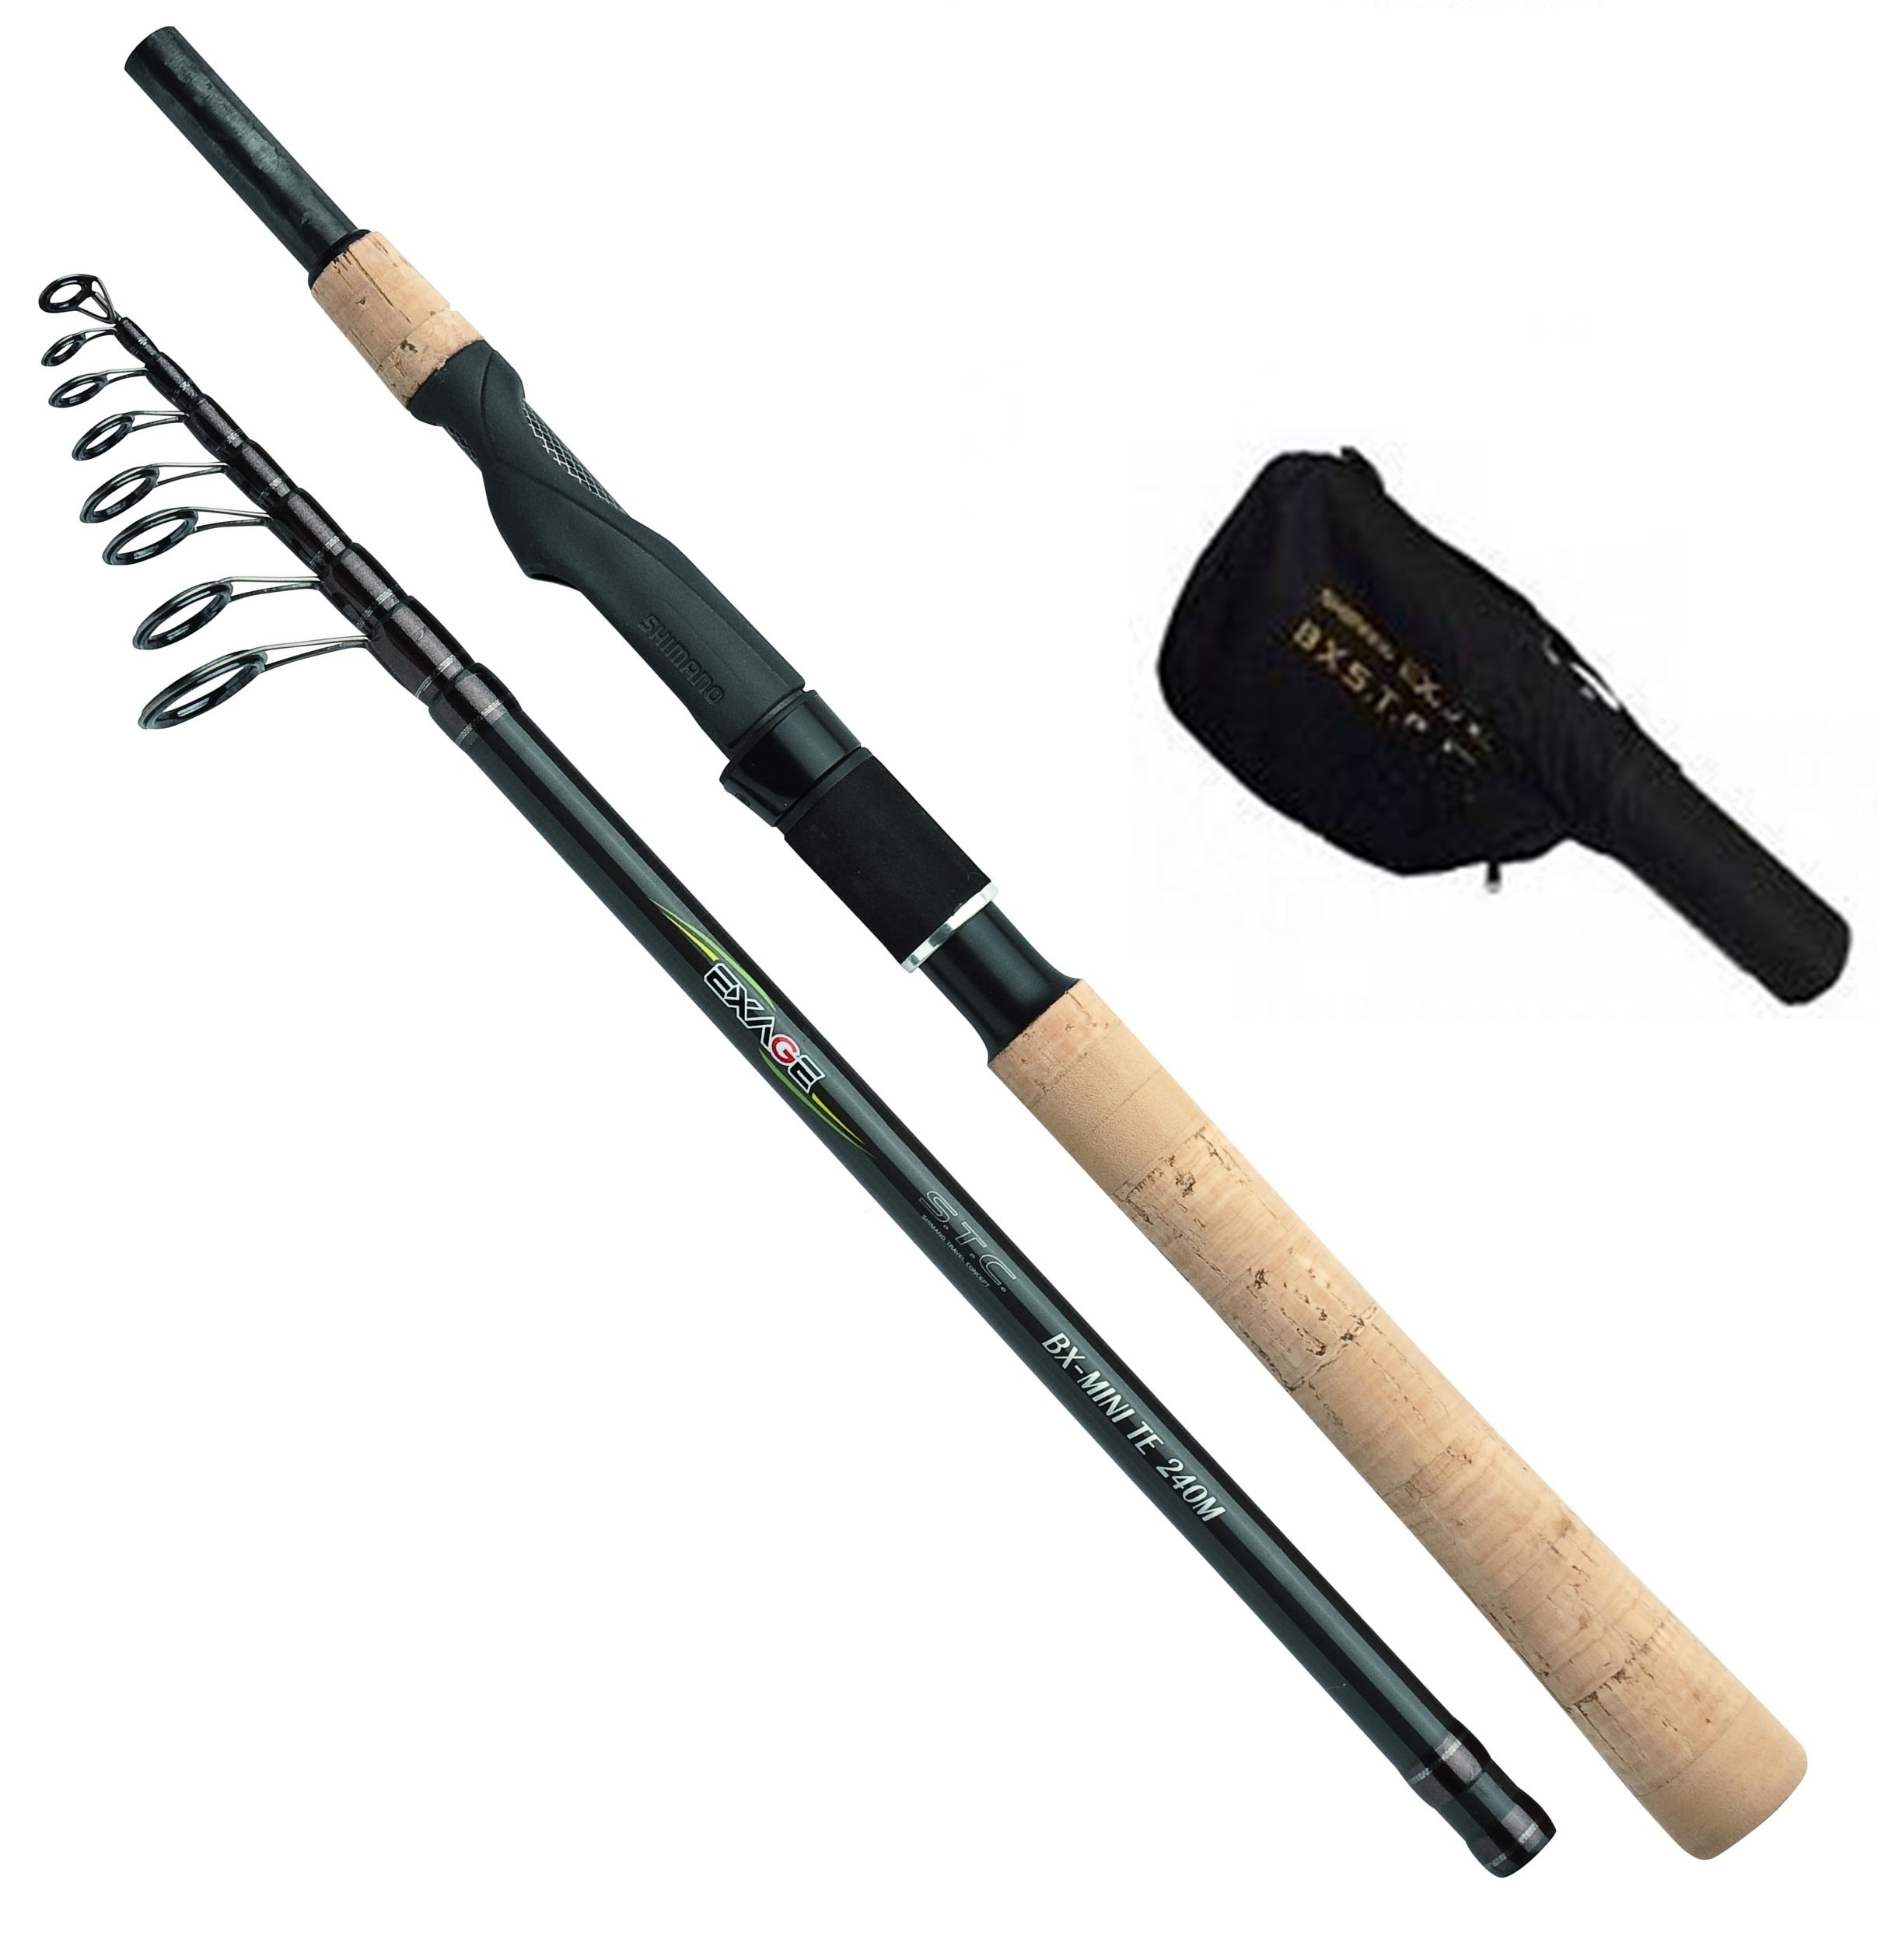 Shimano Exage BX STC Mini Tele Spinning 210 Medium, 6.9 Feet, Travel Spinning Fishing Rod, TEXBXMTS21M